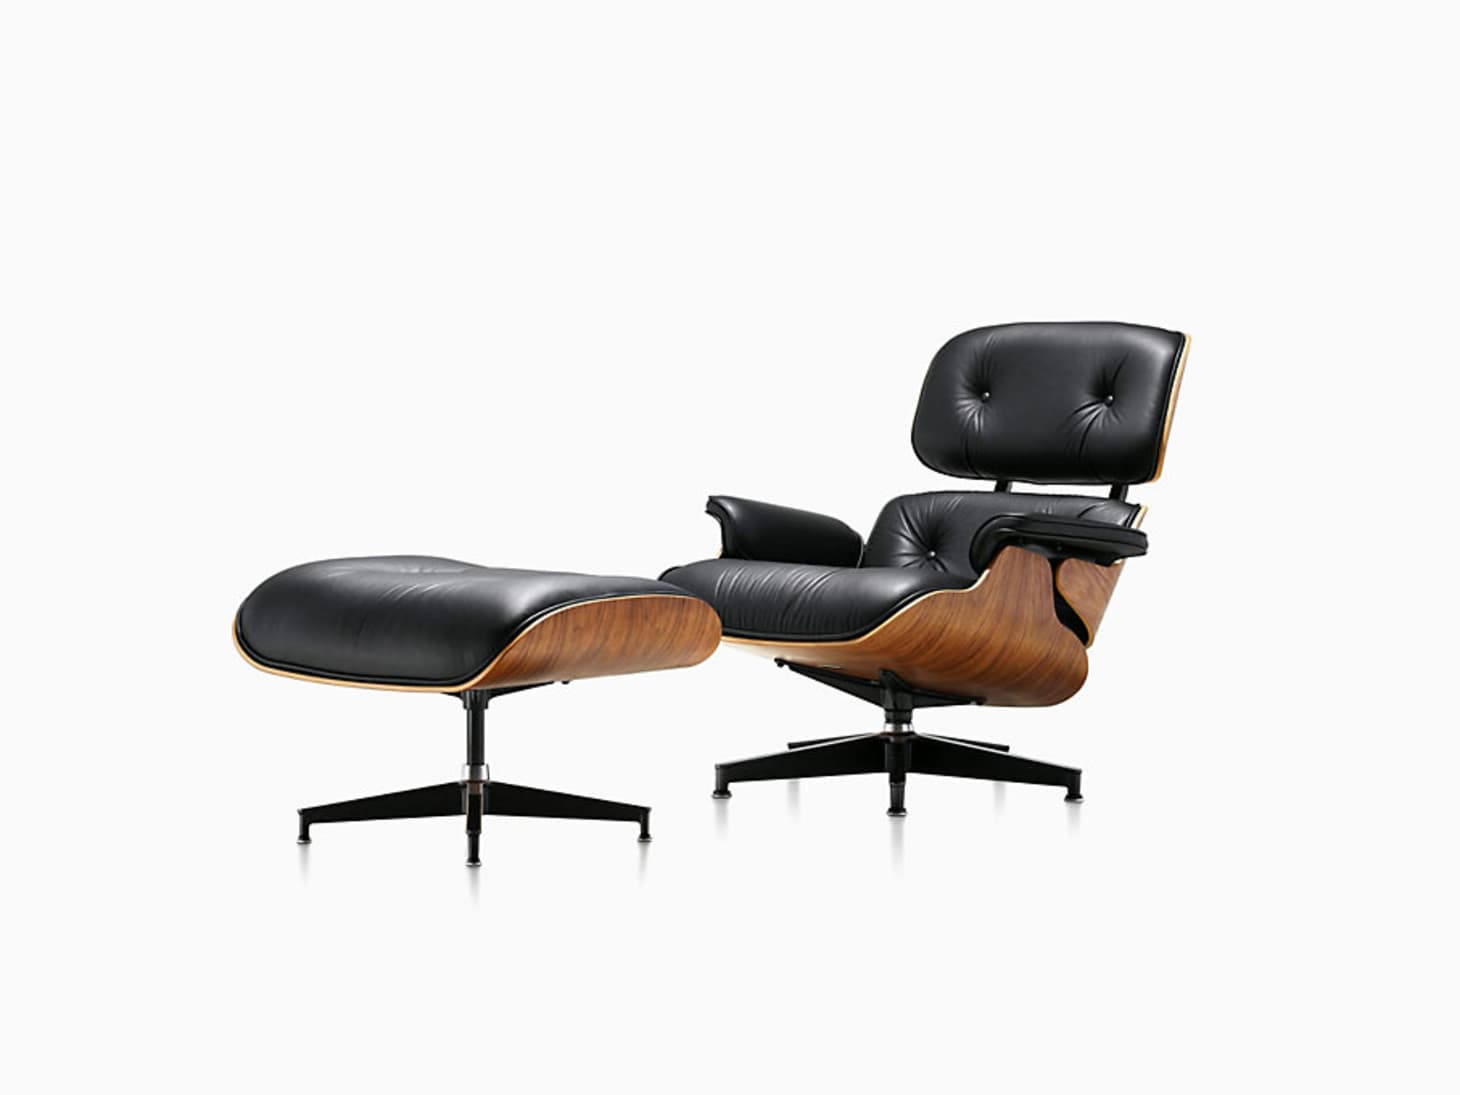 Awe Inspiring The Most Famous Mid Century Modern Furniture Pieces Machost Co Dining Chair Design Ideas Machostcouk